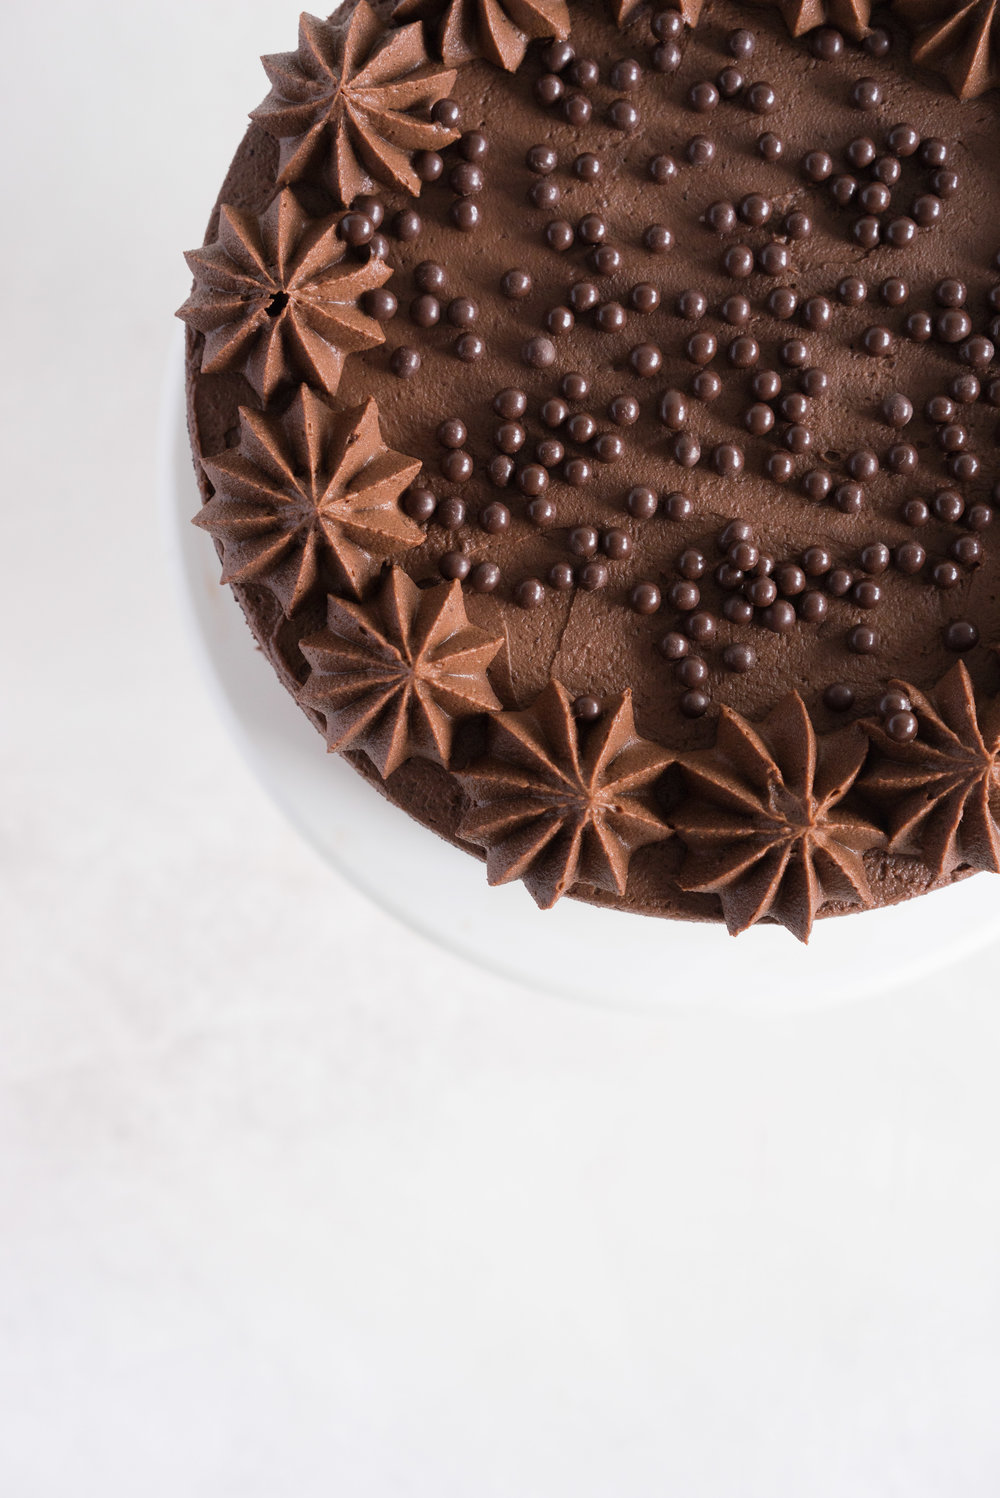 One Bowl Devil's food Layer Cake with Milk Chocolate Frosting - from the new Bravetart book!